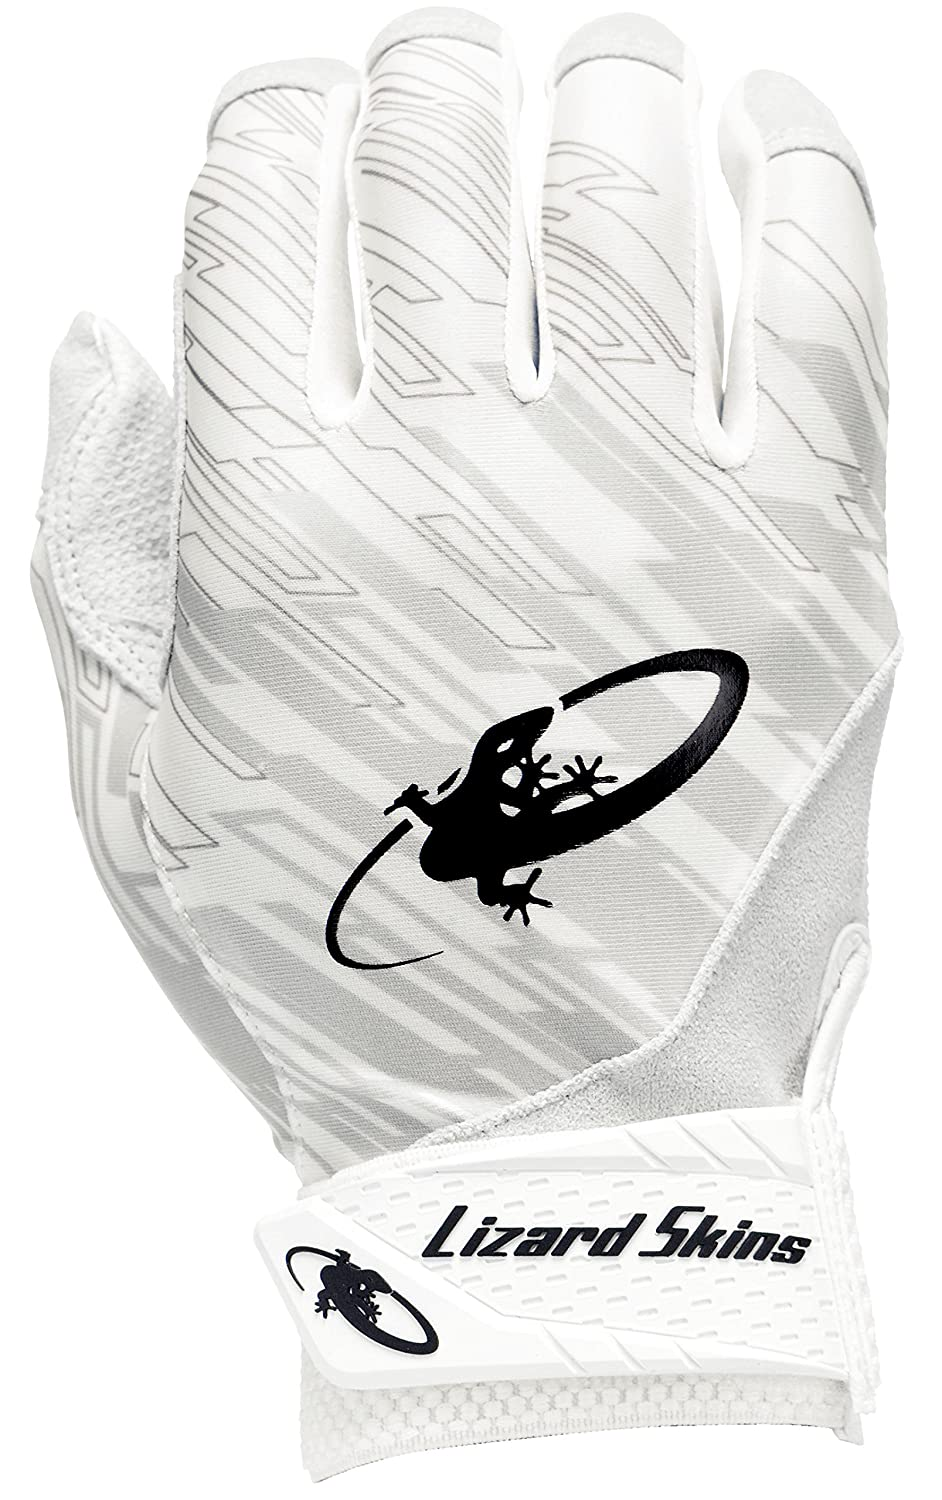 新品同様 Lizard Hand Skinsパッド入りインナーグローブ B07BGGZ5W2 Adult B07BGGZ5W2 Medium|White-Left Hand White-Left Hand Hand Adult Medium, 限定バッグと出会えるエルトゥーク:0ca3511c --- a0267596.xsph.ru